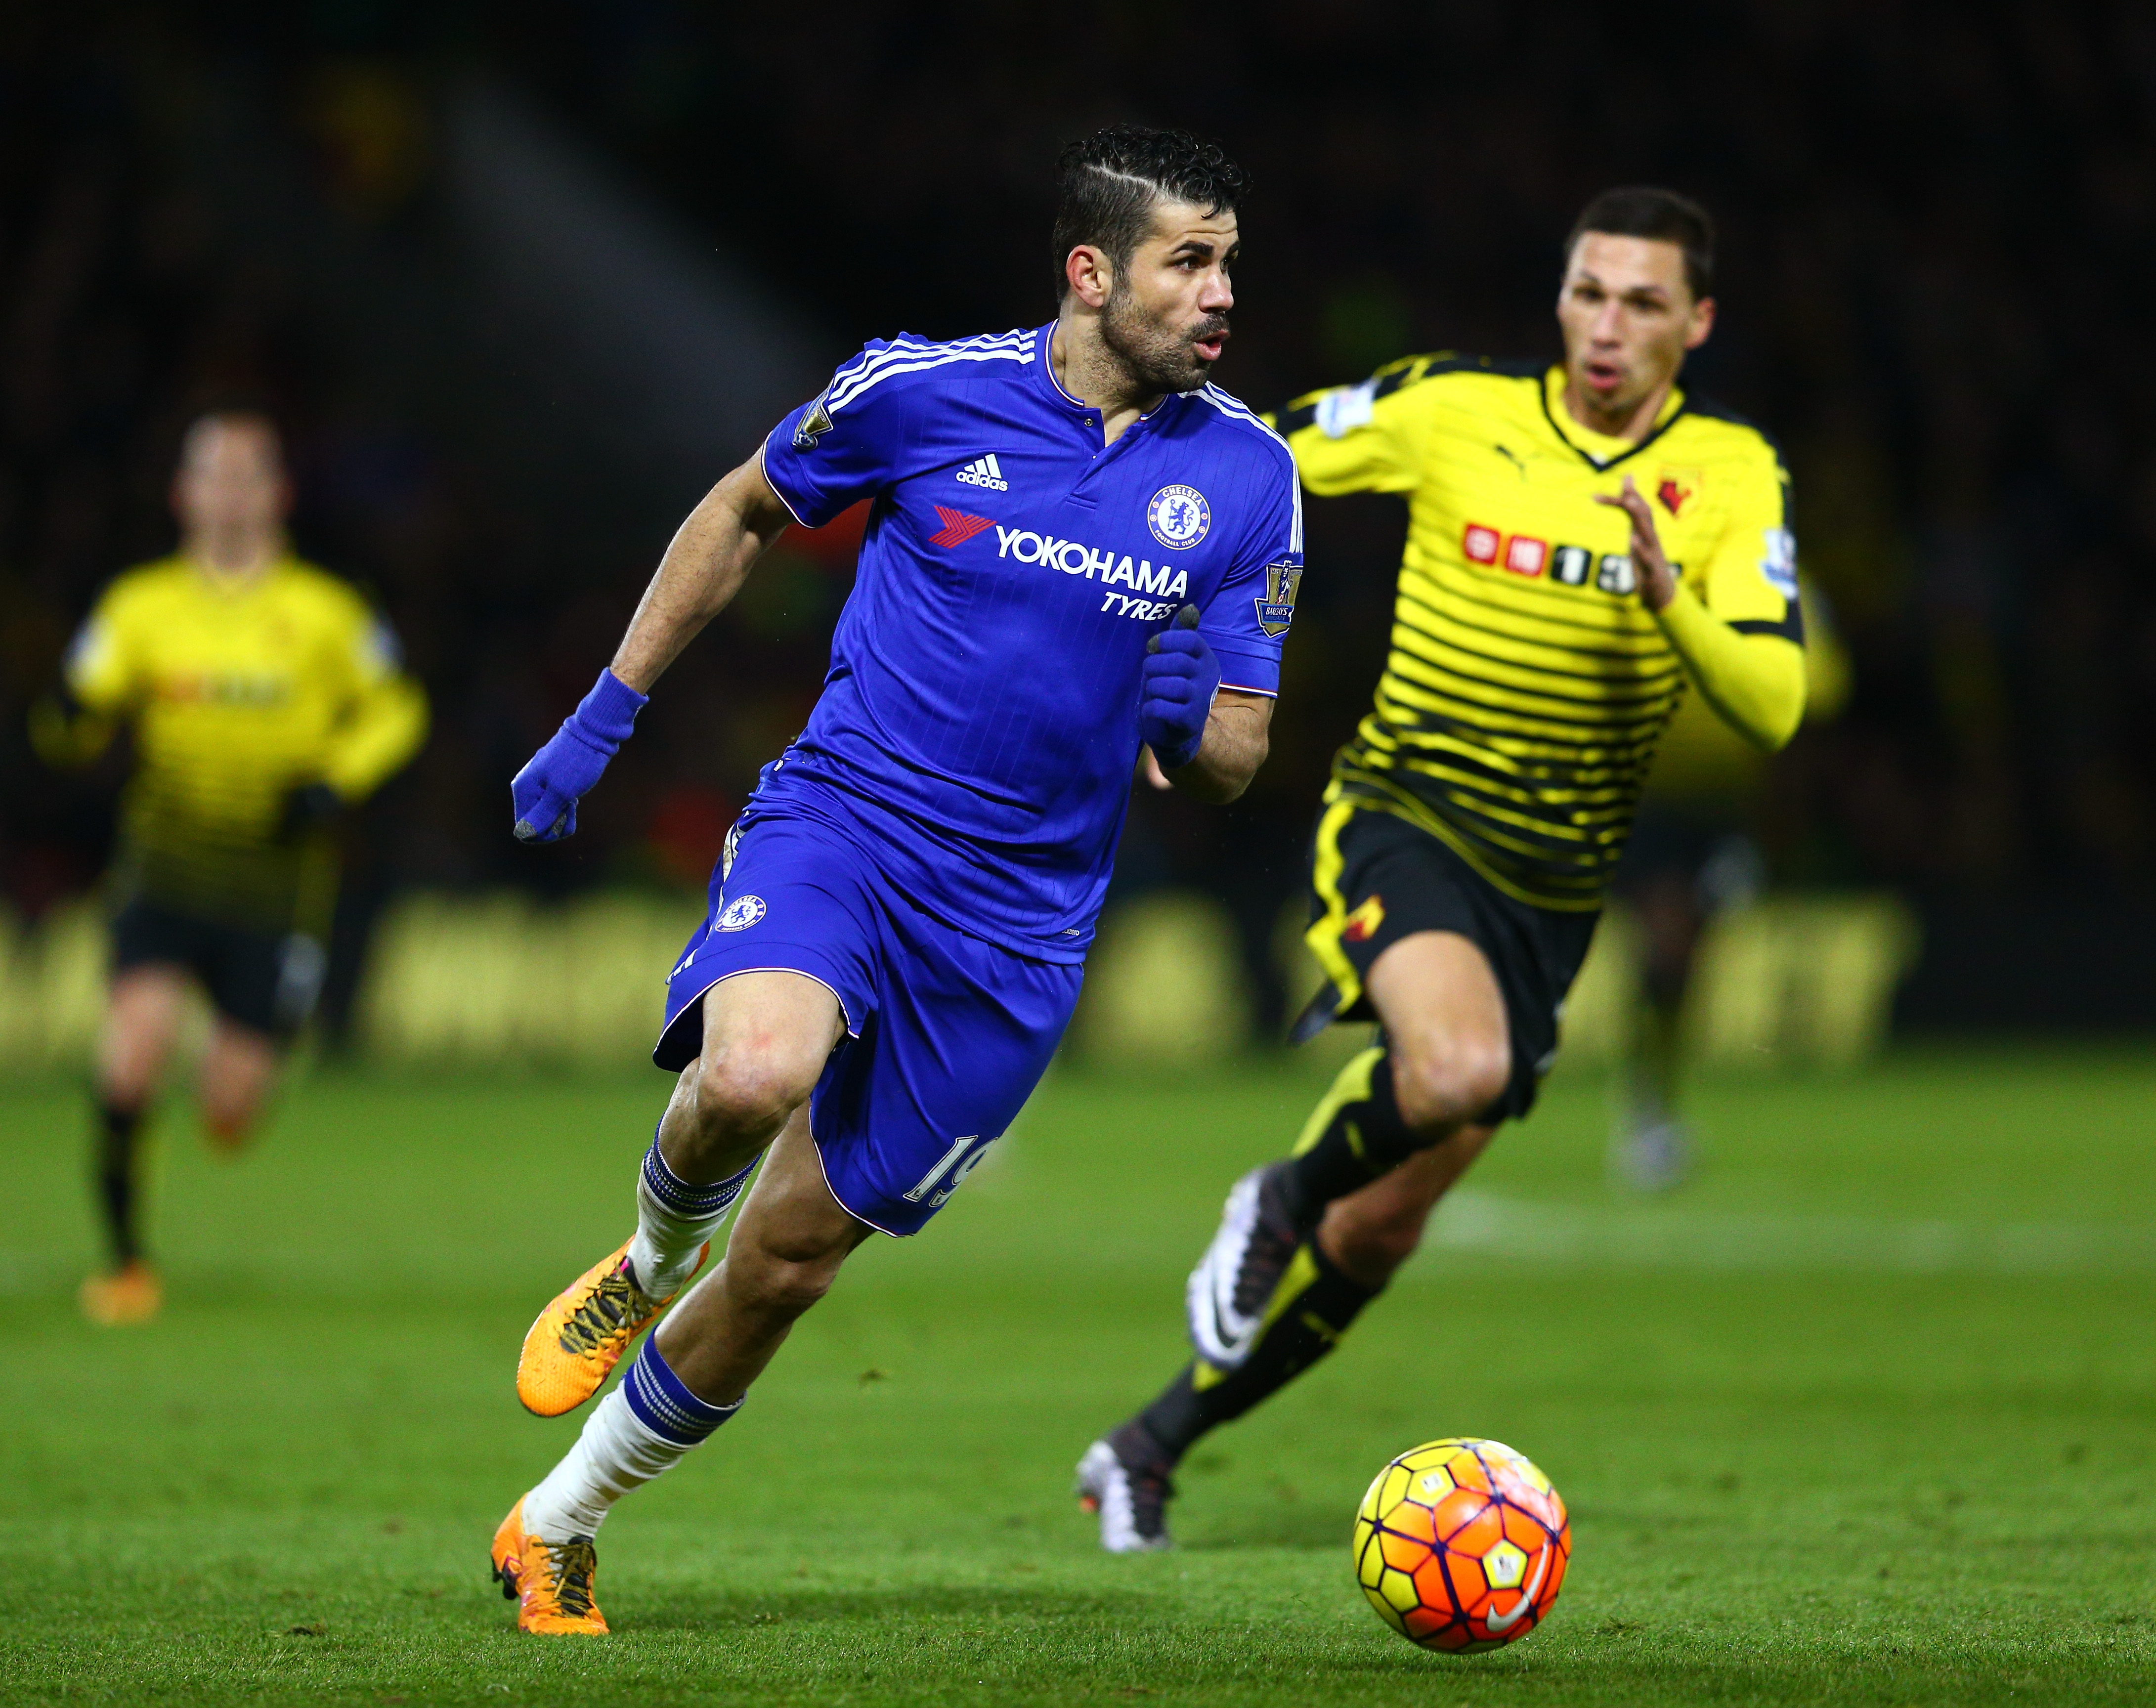 Chelsea Vs Watford: Chelsea And Watford Head-to-head: The Last Five Clashes